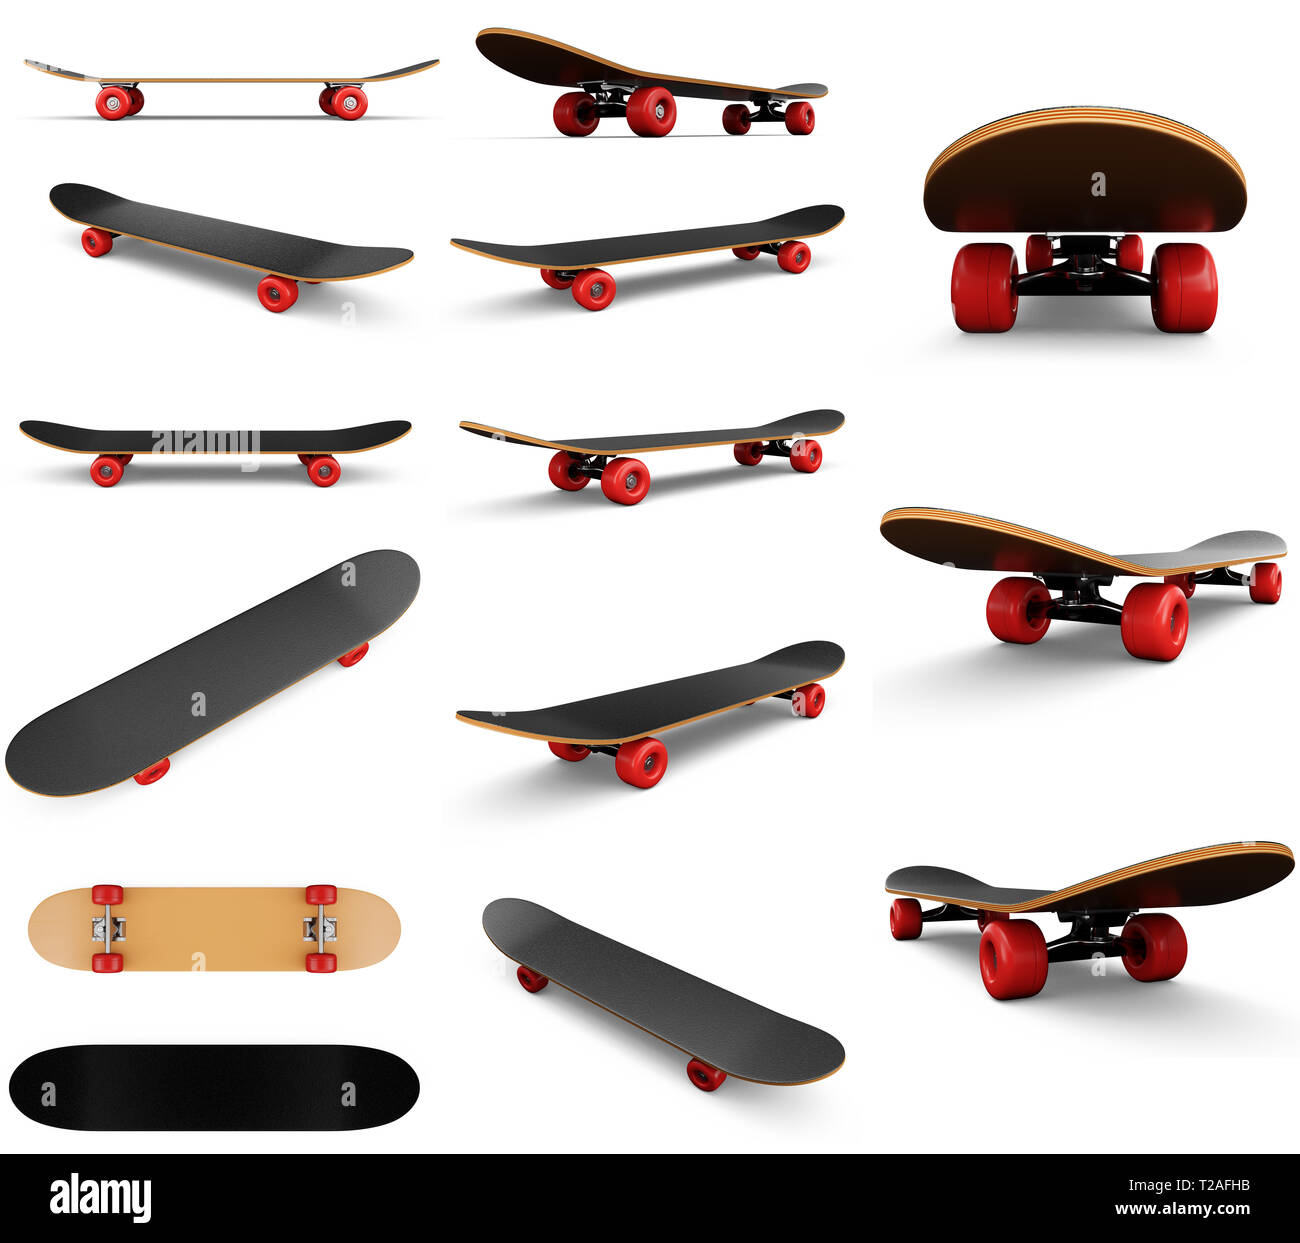 e4f85f5f 3d illustration collection, group, set of fourteen skateboards isolated on  white background. Photorealistic